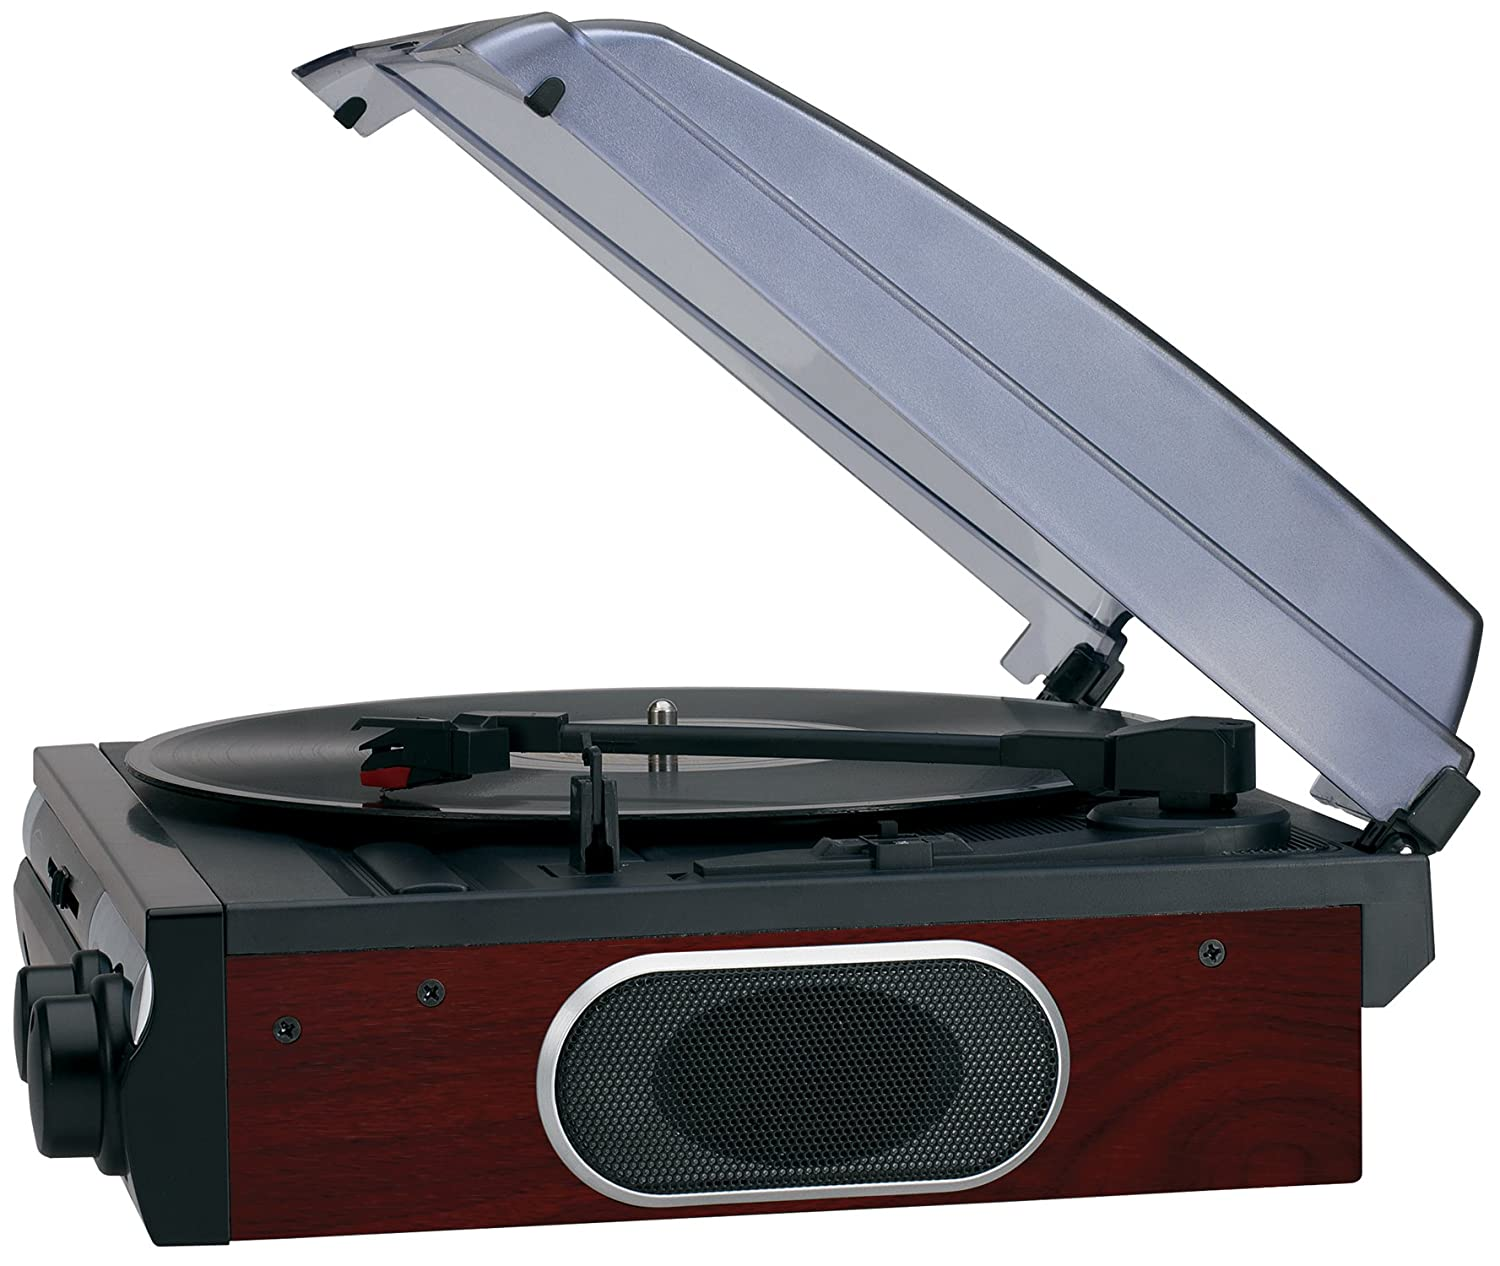 Superior Amazon.com: Jensen JTA 230 3 Speed Stereo Turntable With Built In Speakers:  Home Audio U0026 Theater